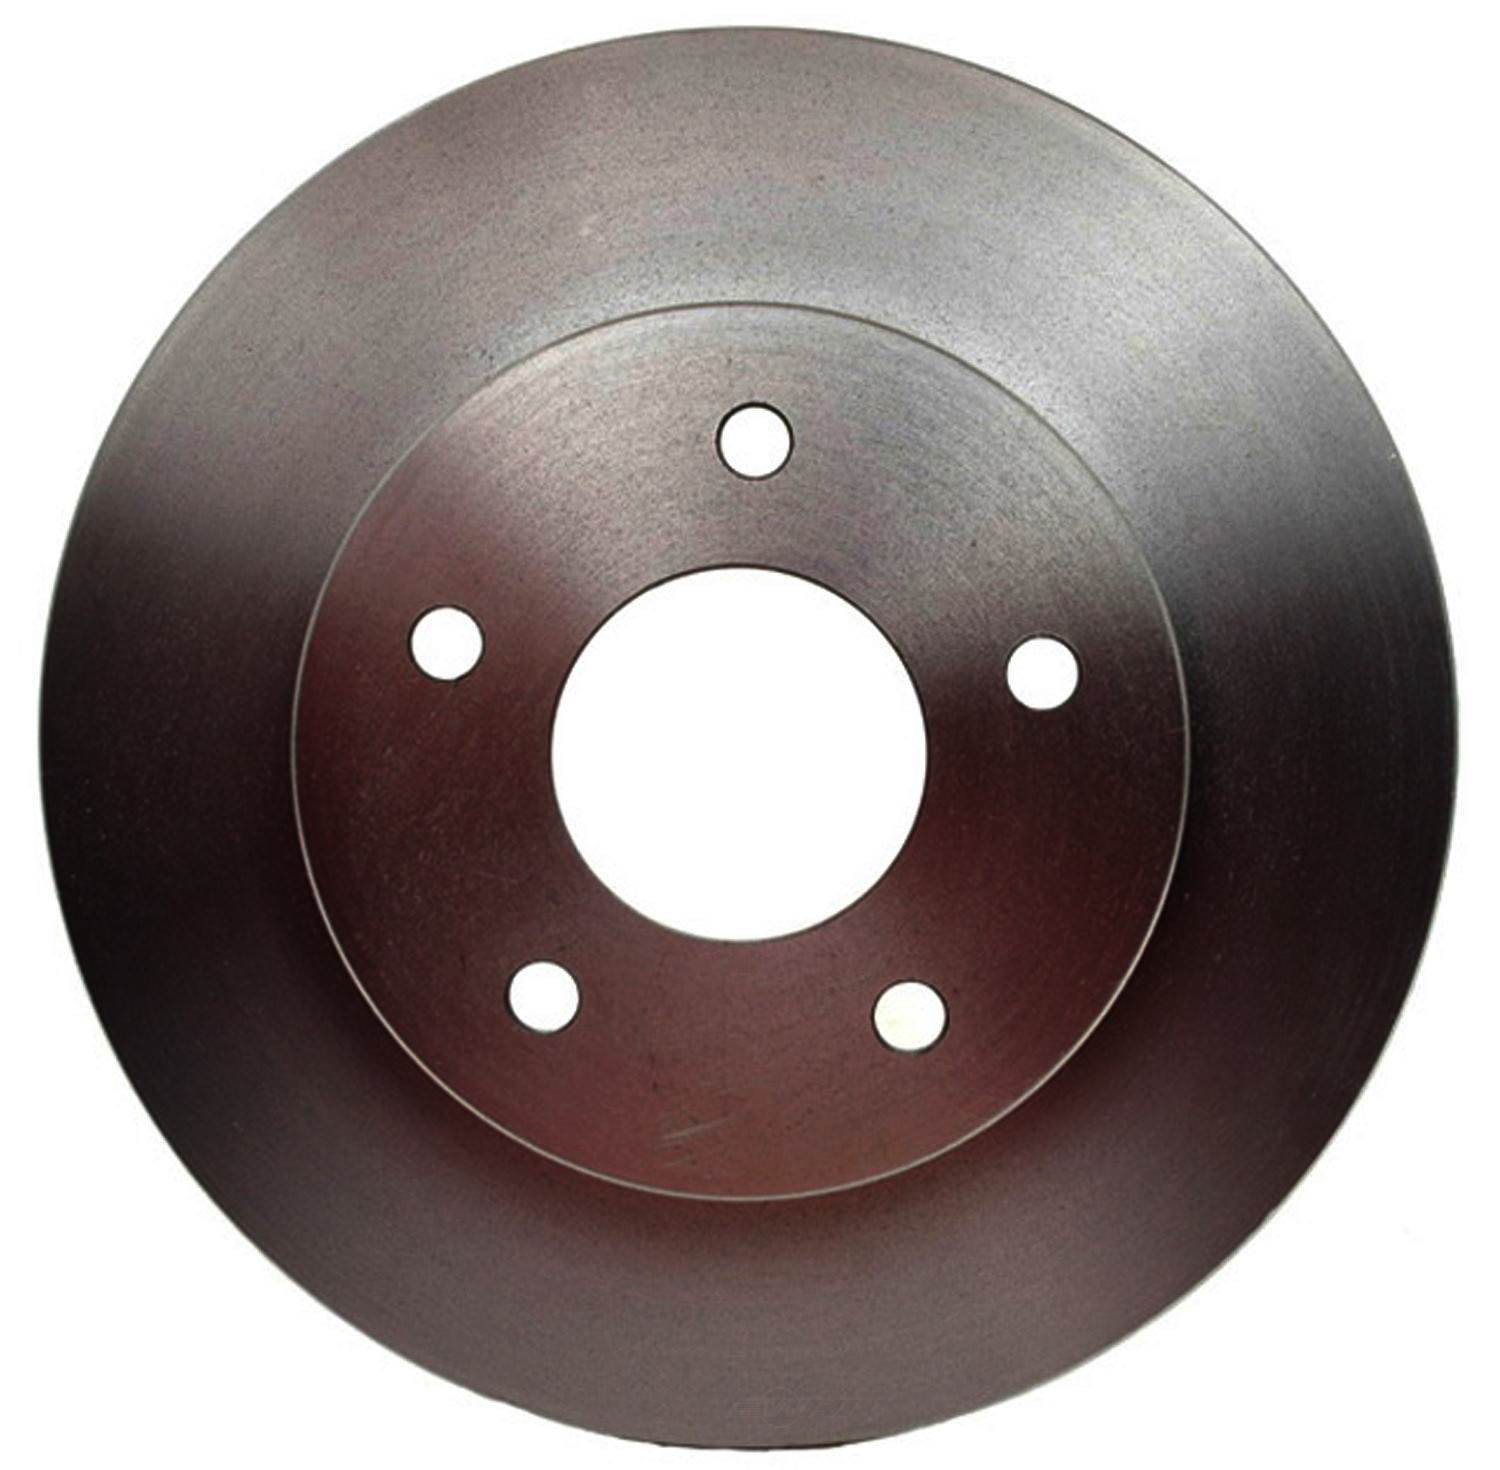 ACDELCO ADVANTAGE - Non-Coated Disc Brake Rotor - DCD 18A701A